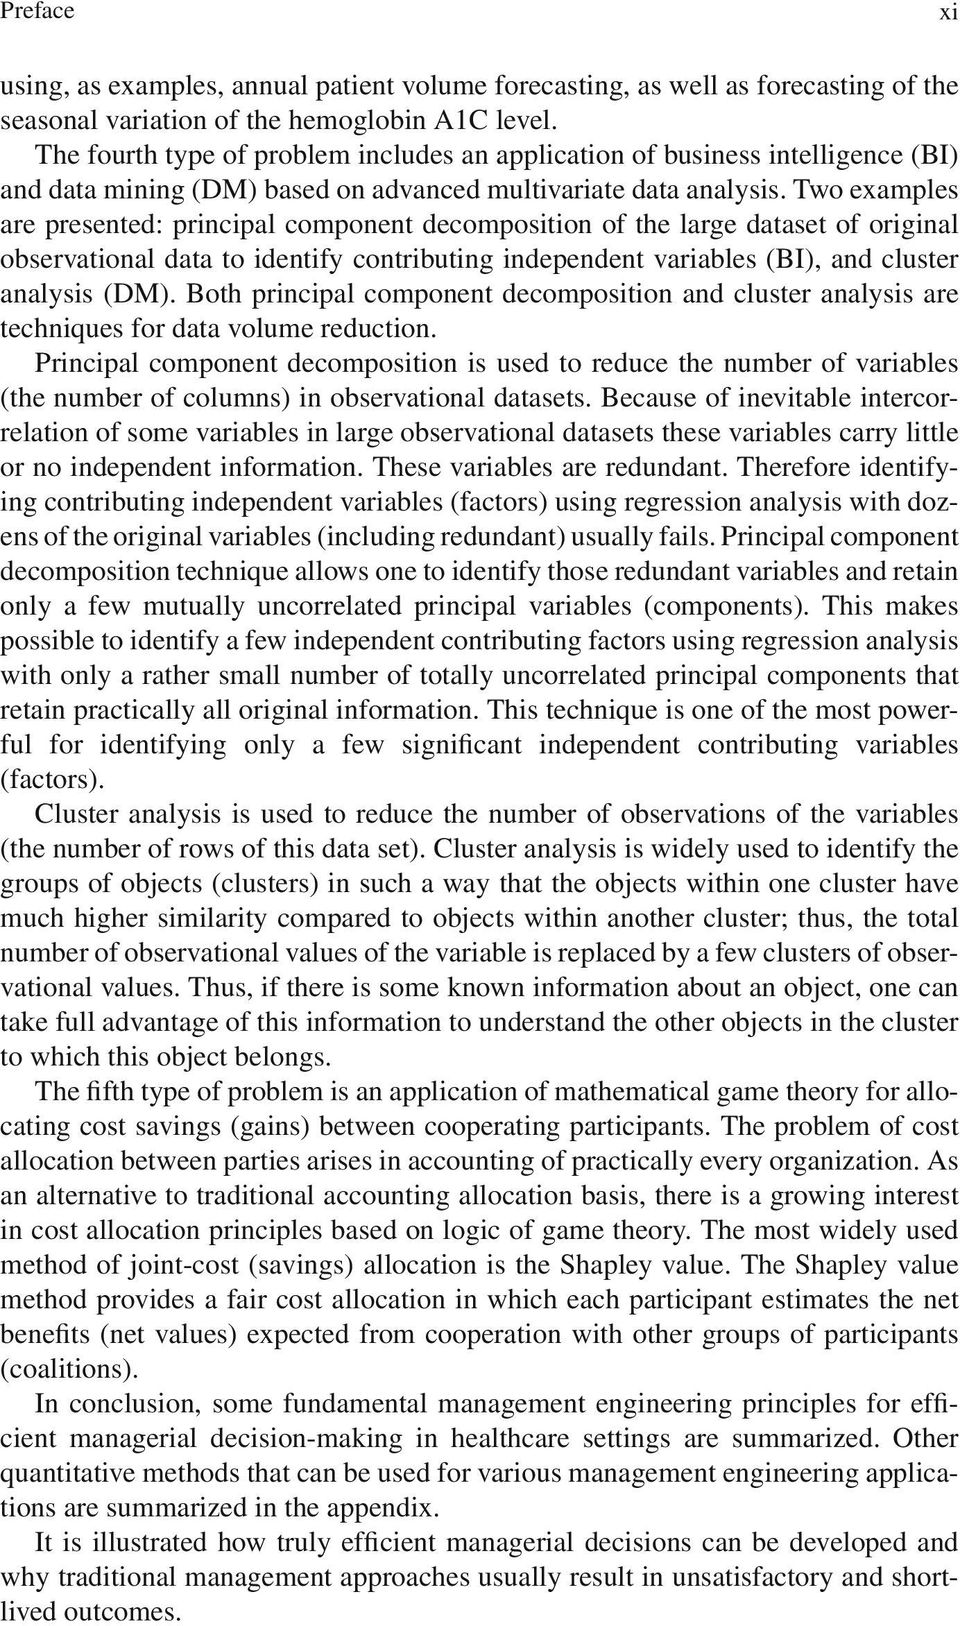 Two examples are presented: principal component decomposition of the large dataset of original observational data to identify contributing independent variables (BI), and cluster analysis (DM).